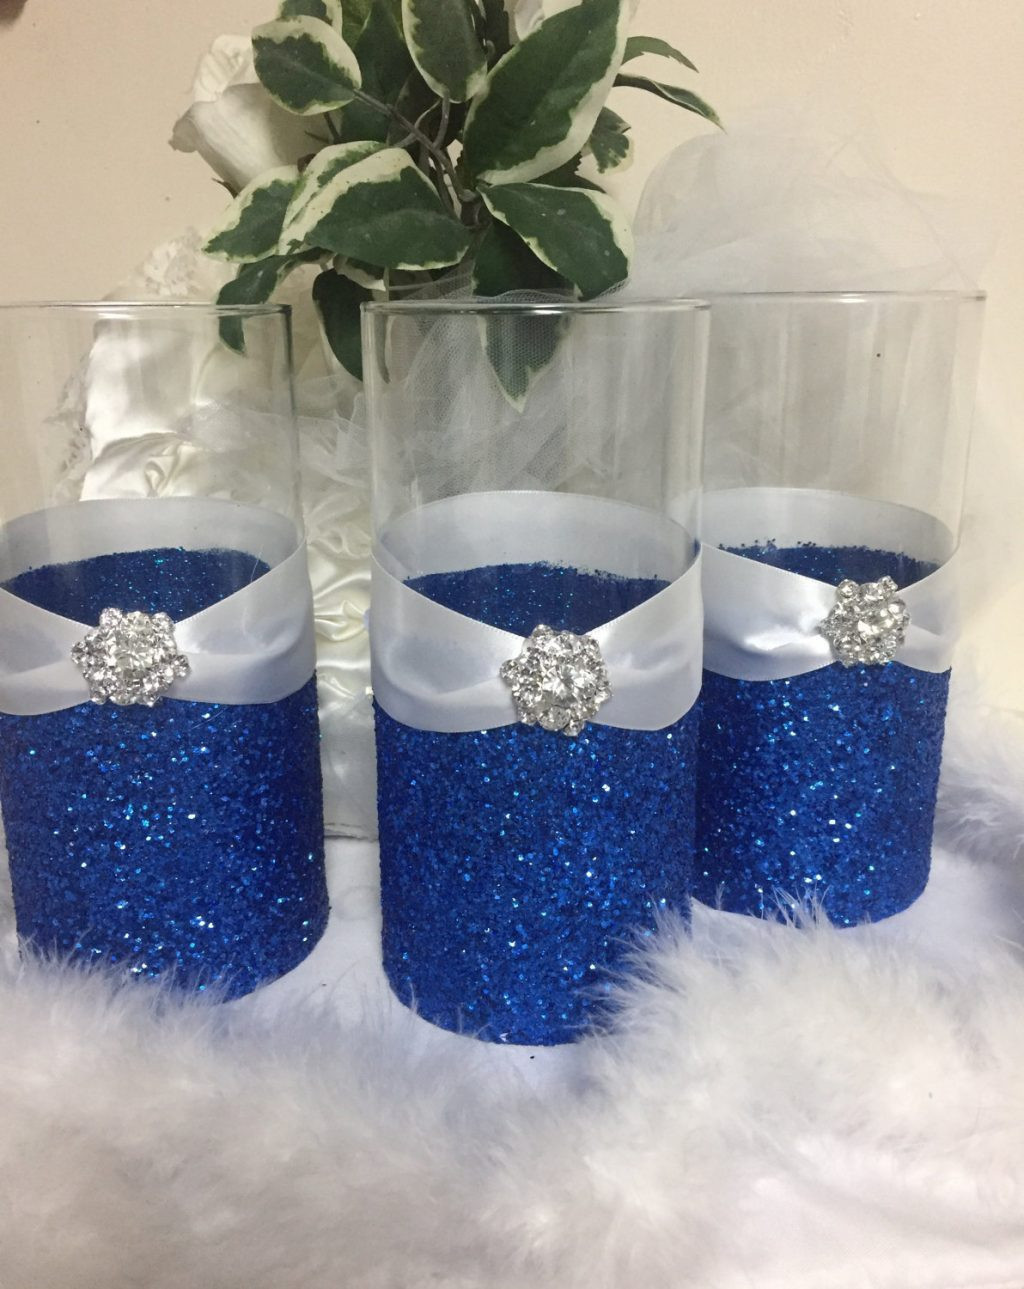 29 Lovable Wedgwood Vase Blue and White 2021 free download wedgwood vase blue and white of navy blue vases photos 121 a group of two wedgwood jasperware vases with regard to navy blue vases gallery tallh vases glitter vase centerpiece diy vasei 0d b